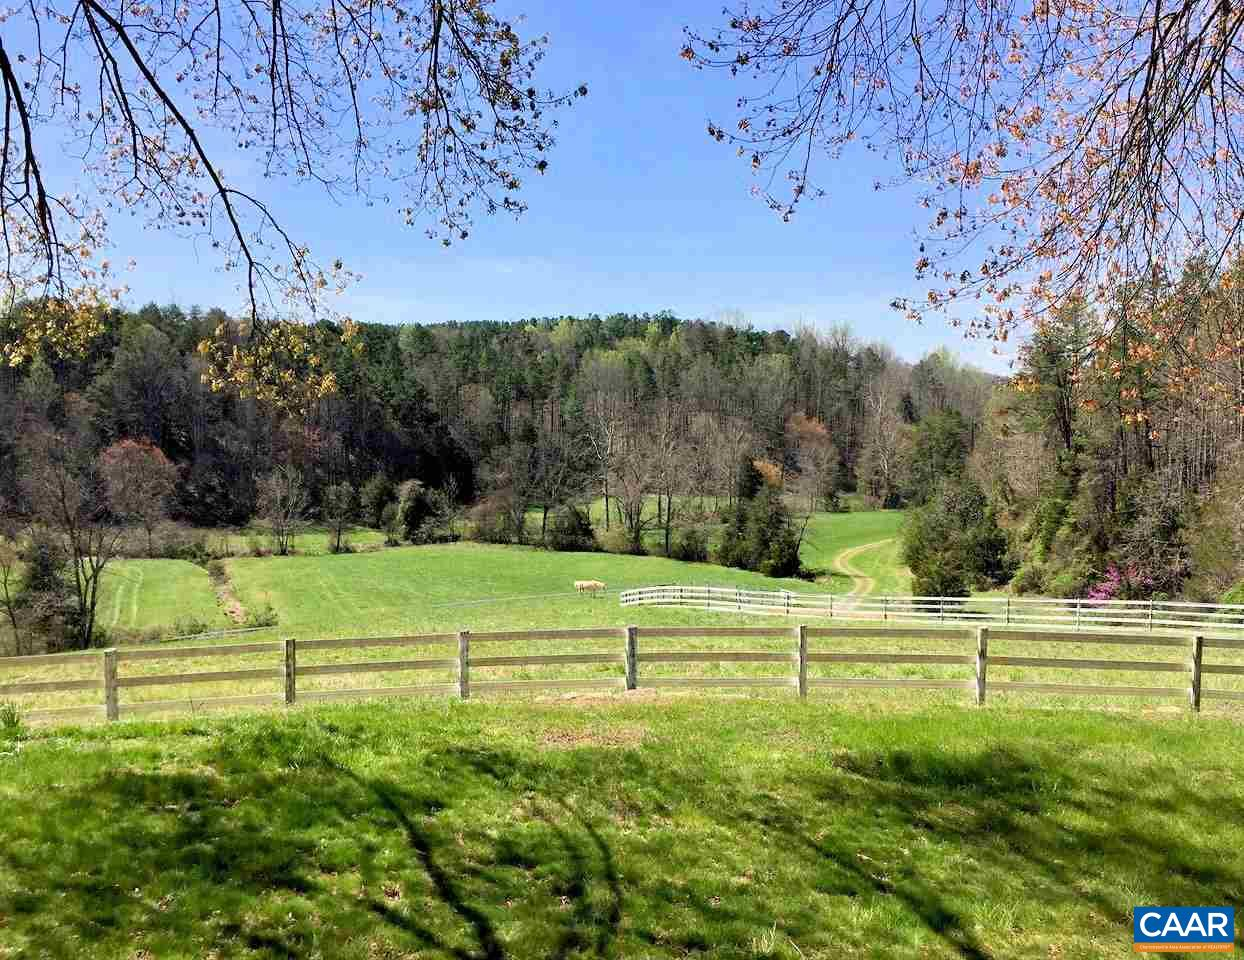 Convenience, privacy, and stunning views are yours with this turn-key 237 acre horse farm in Earlysville.  The well maintained farmhouse overlooks lush pastures, productive hayfields, hardwood forests, and Beaver Dam Creek which traverses the property. Several excellent homesites offer gorgeous year round mountain views.  Complete horse boarding, breeding and training facilities include an 18 stall double-center-aisle horse barn, 3,000 sq ft hay barn, Centaur HTP fencing, 3 large pastures and 7 paddocks with run-in-sheds and automatic waterers, 180' x 130' riding arena, 80' round pen, and extensive riding trails throughout the property.